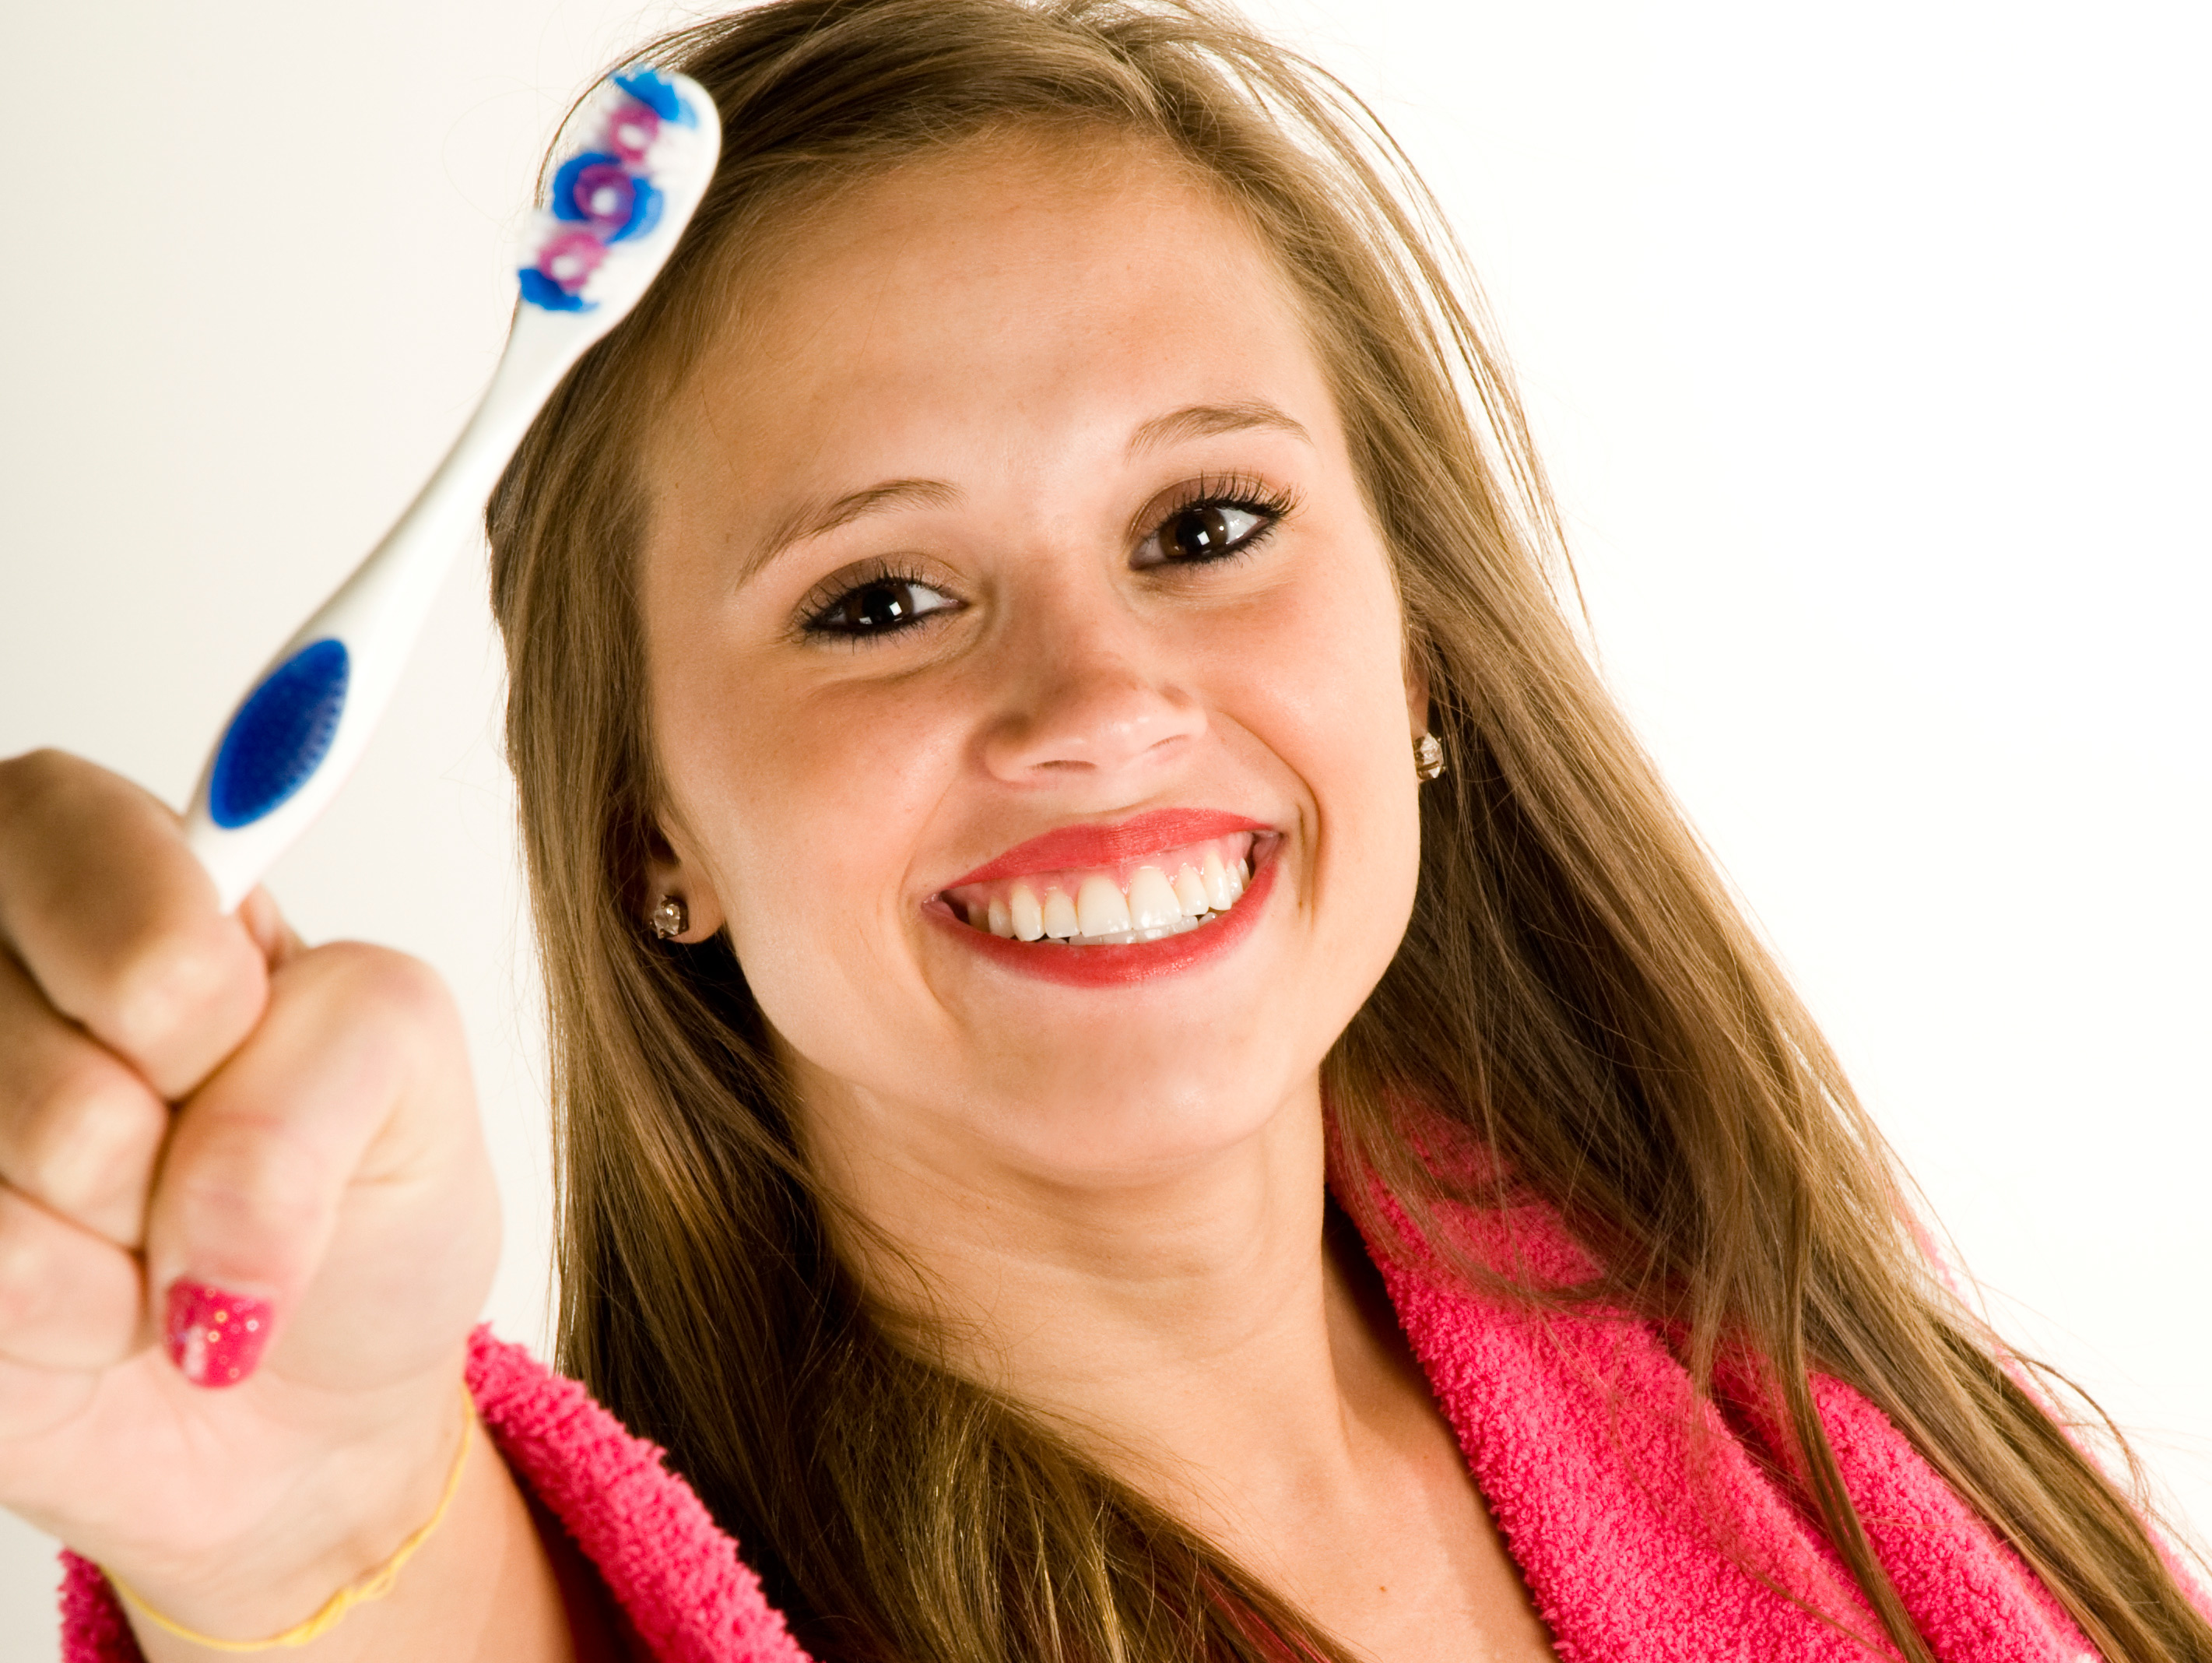 Use your toothbrush to fight cancer